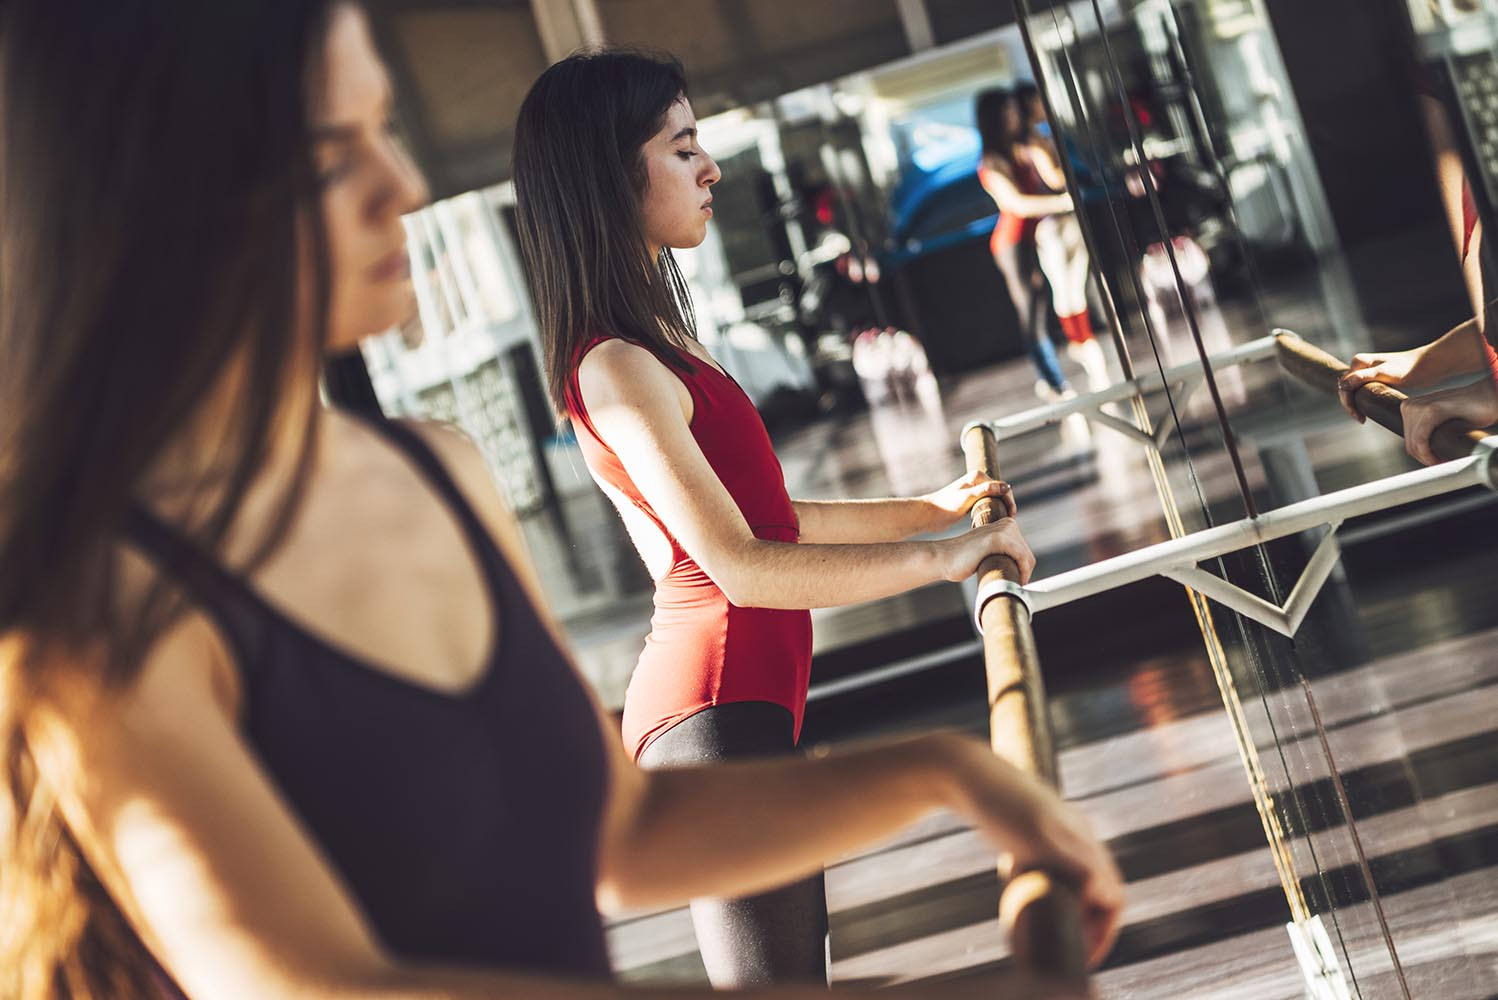 Young ballet dancer working out in studio